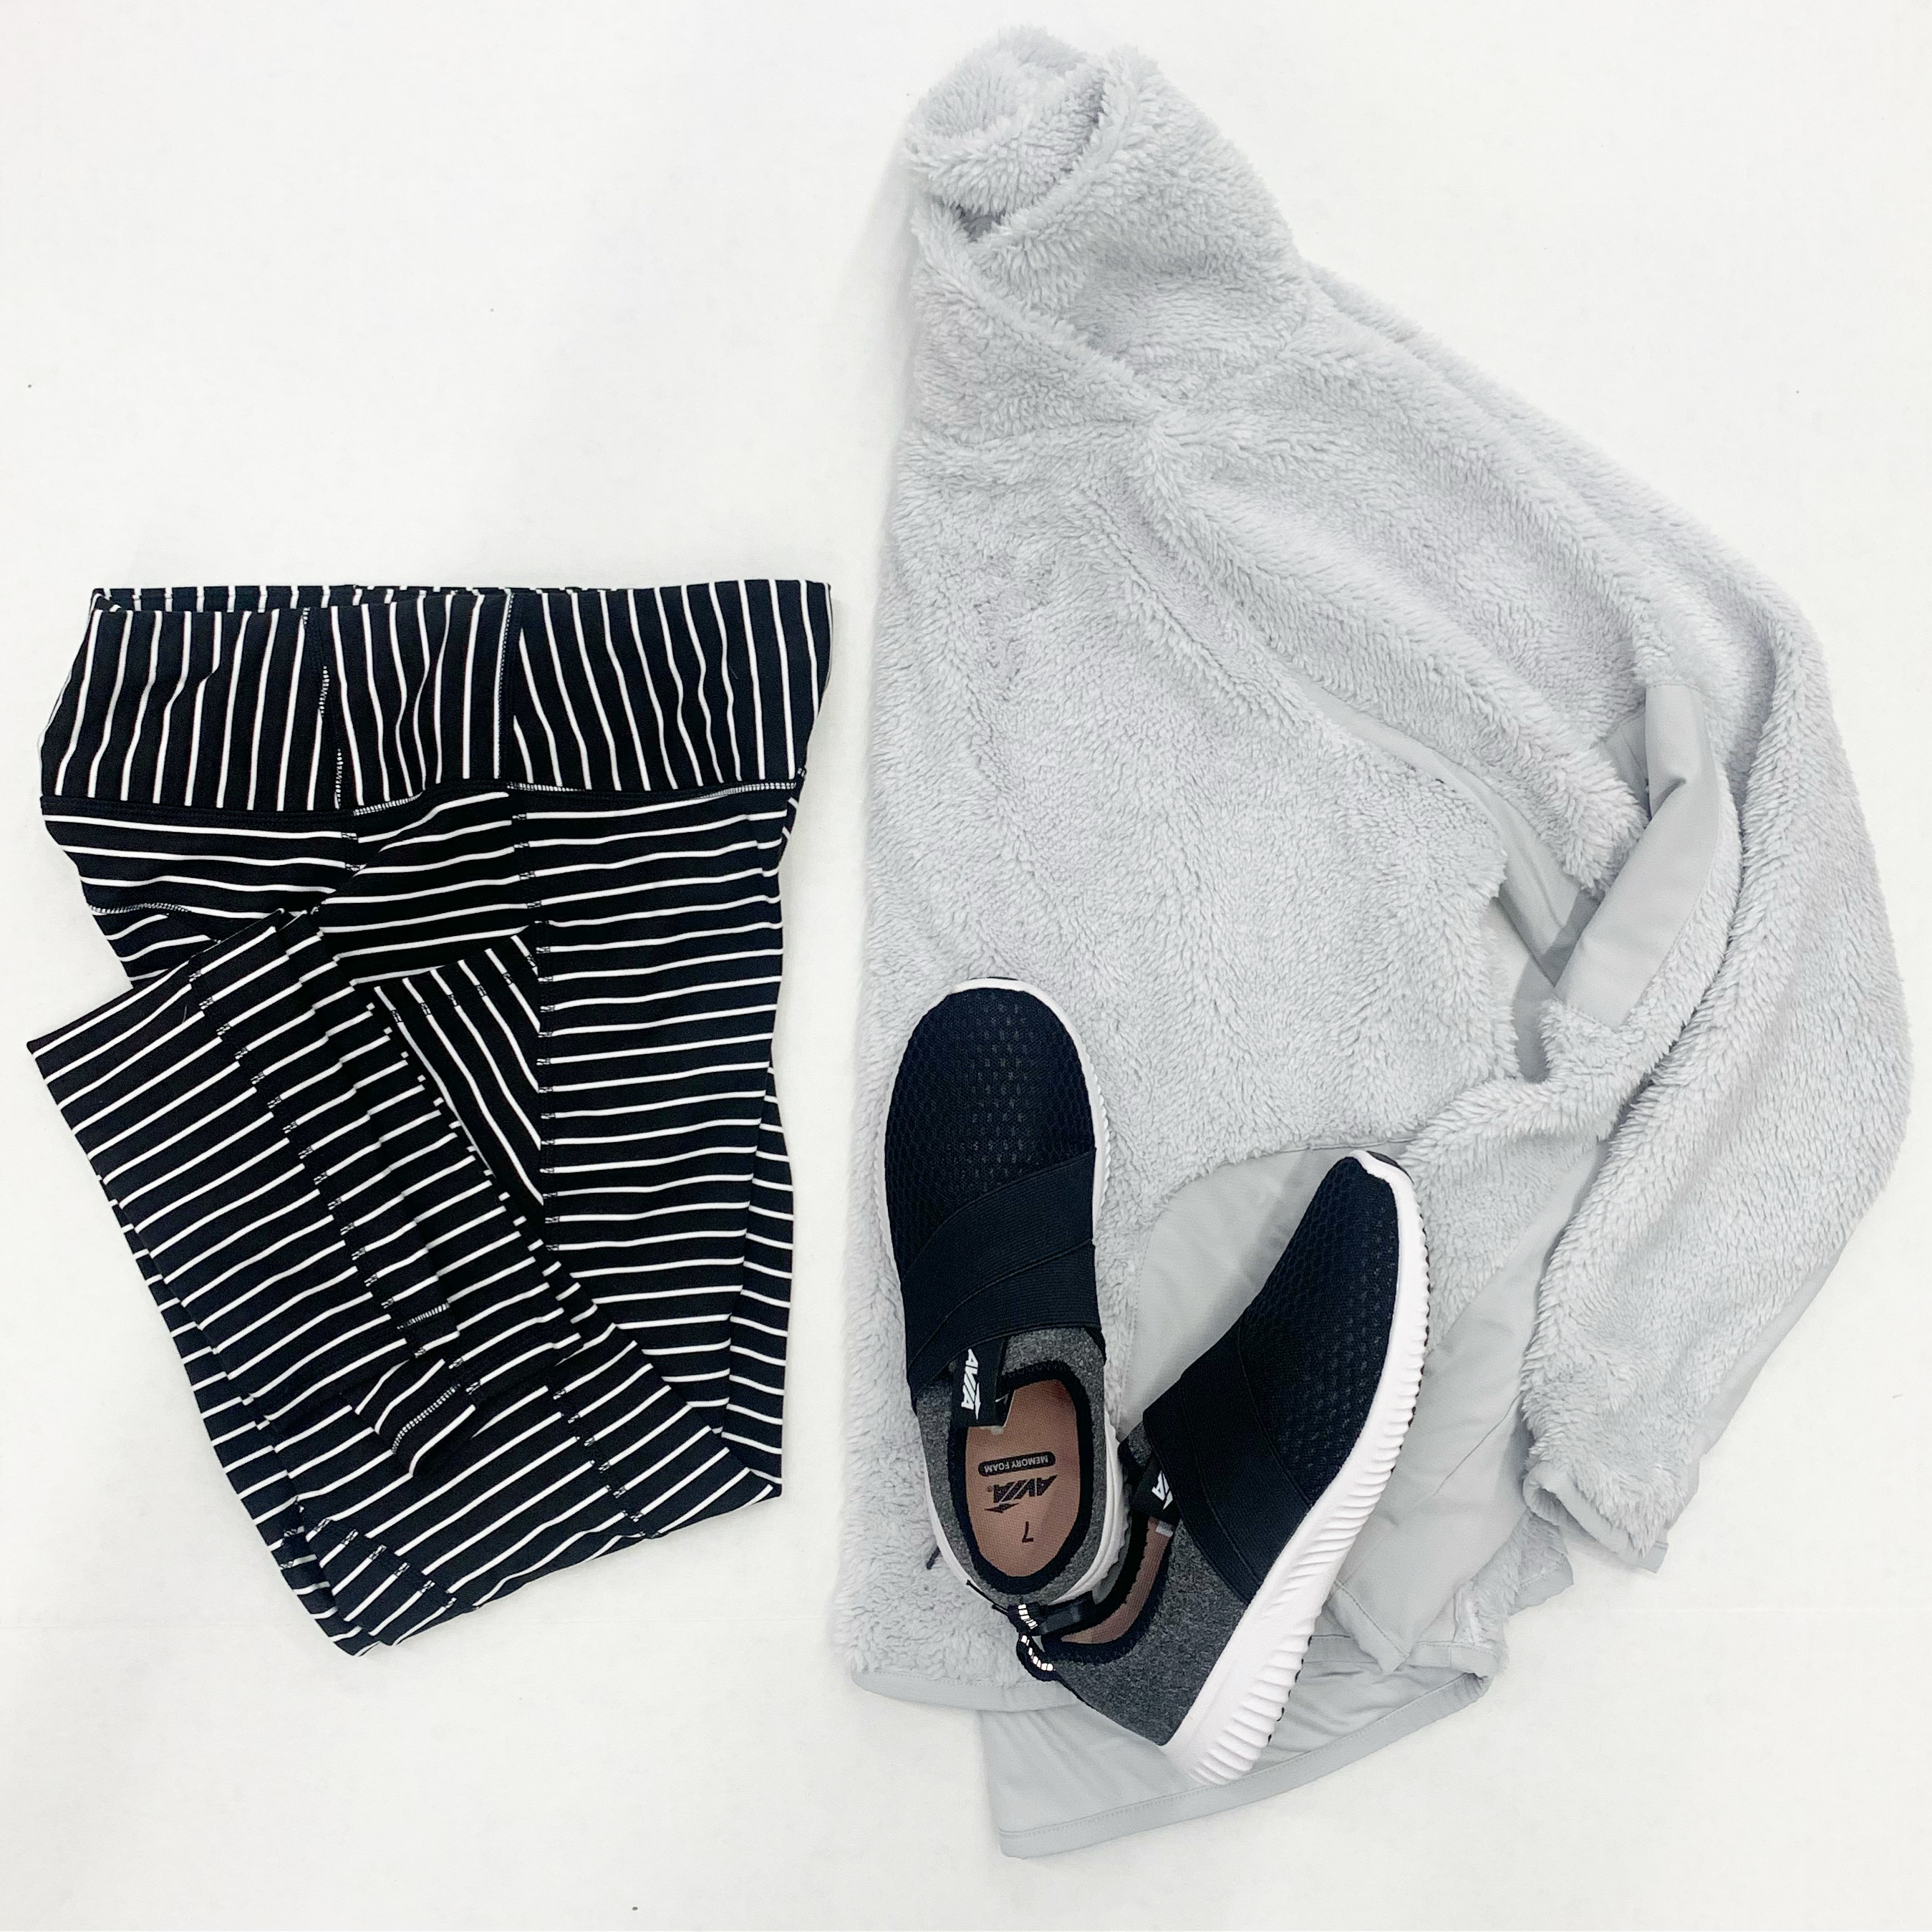 black and white striped lulu dupes with grey sherpa pullover and athletic shoe